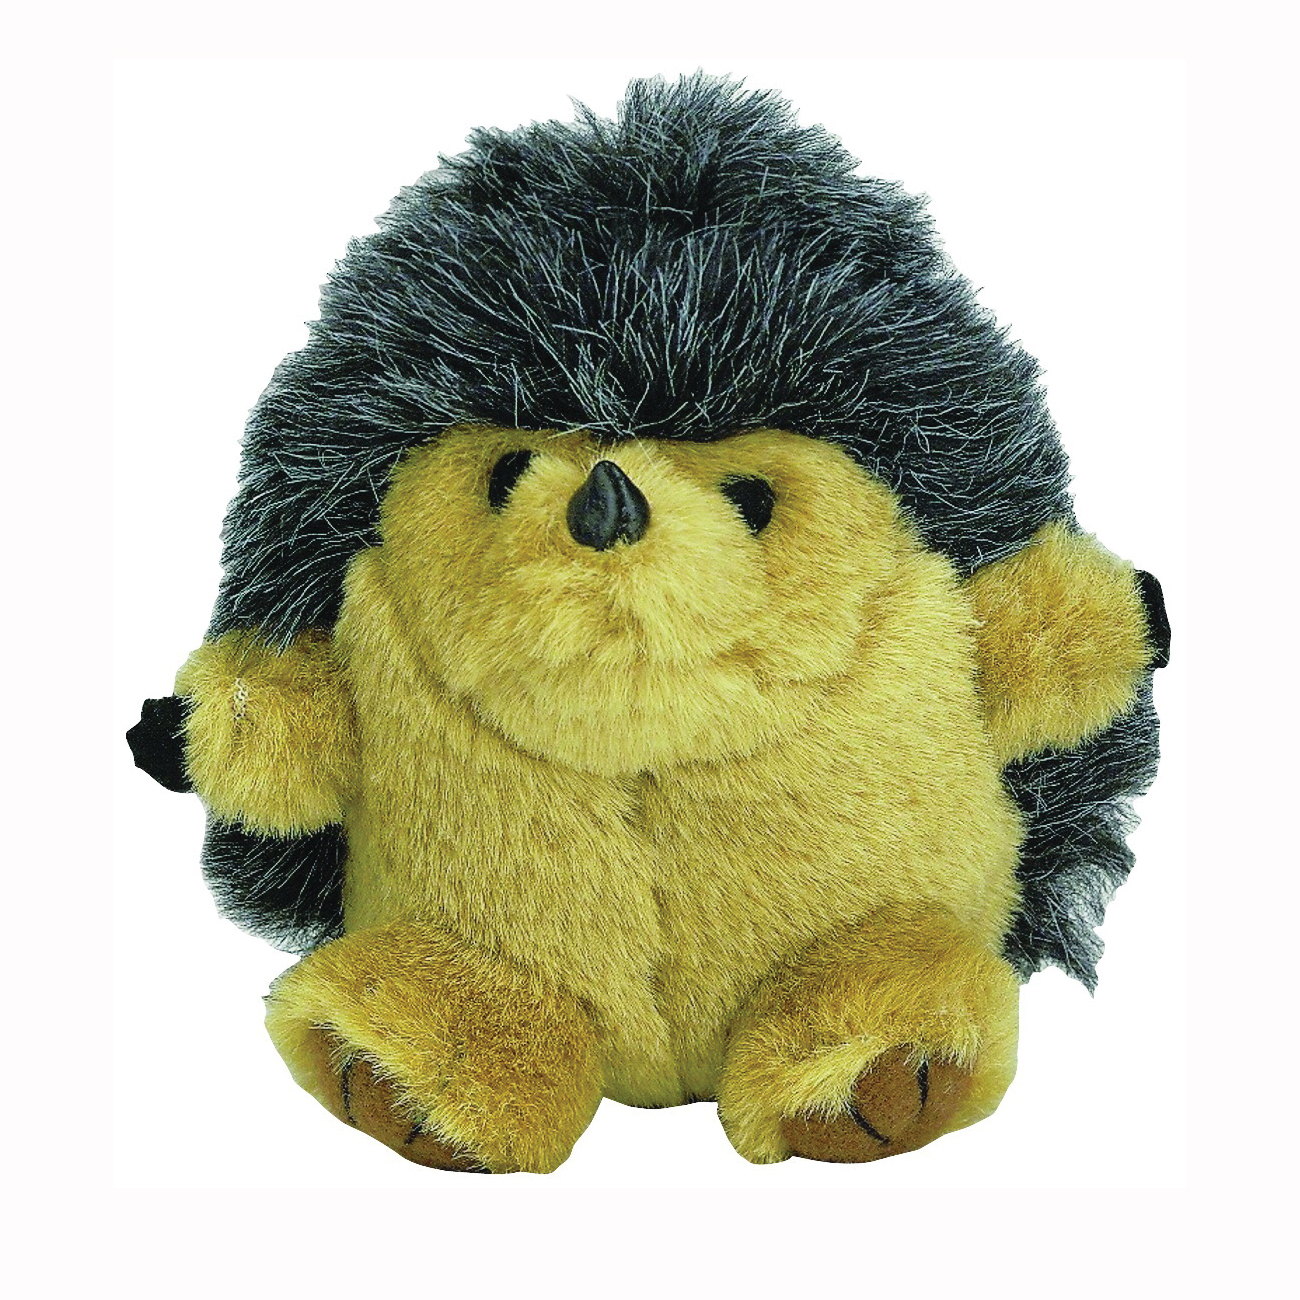 Picture of booda 53602 Squatters Plush Toy, M, Bitable Toy, Hedgehog, Synthetic Plush Fabric, Multi-Color